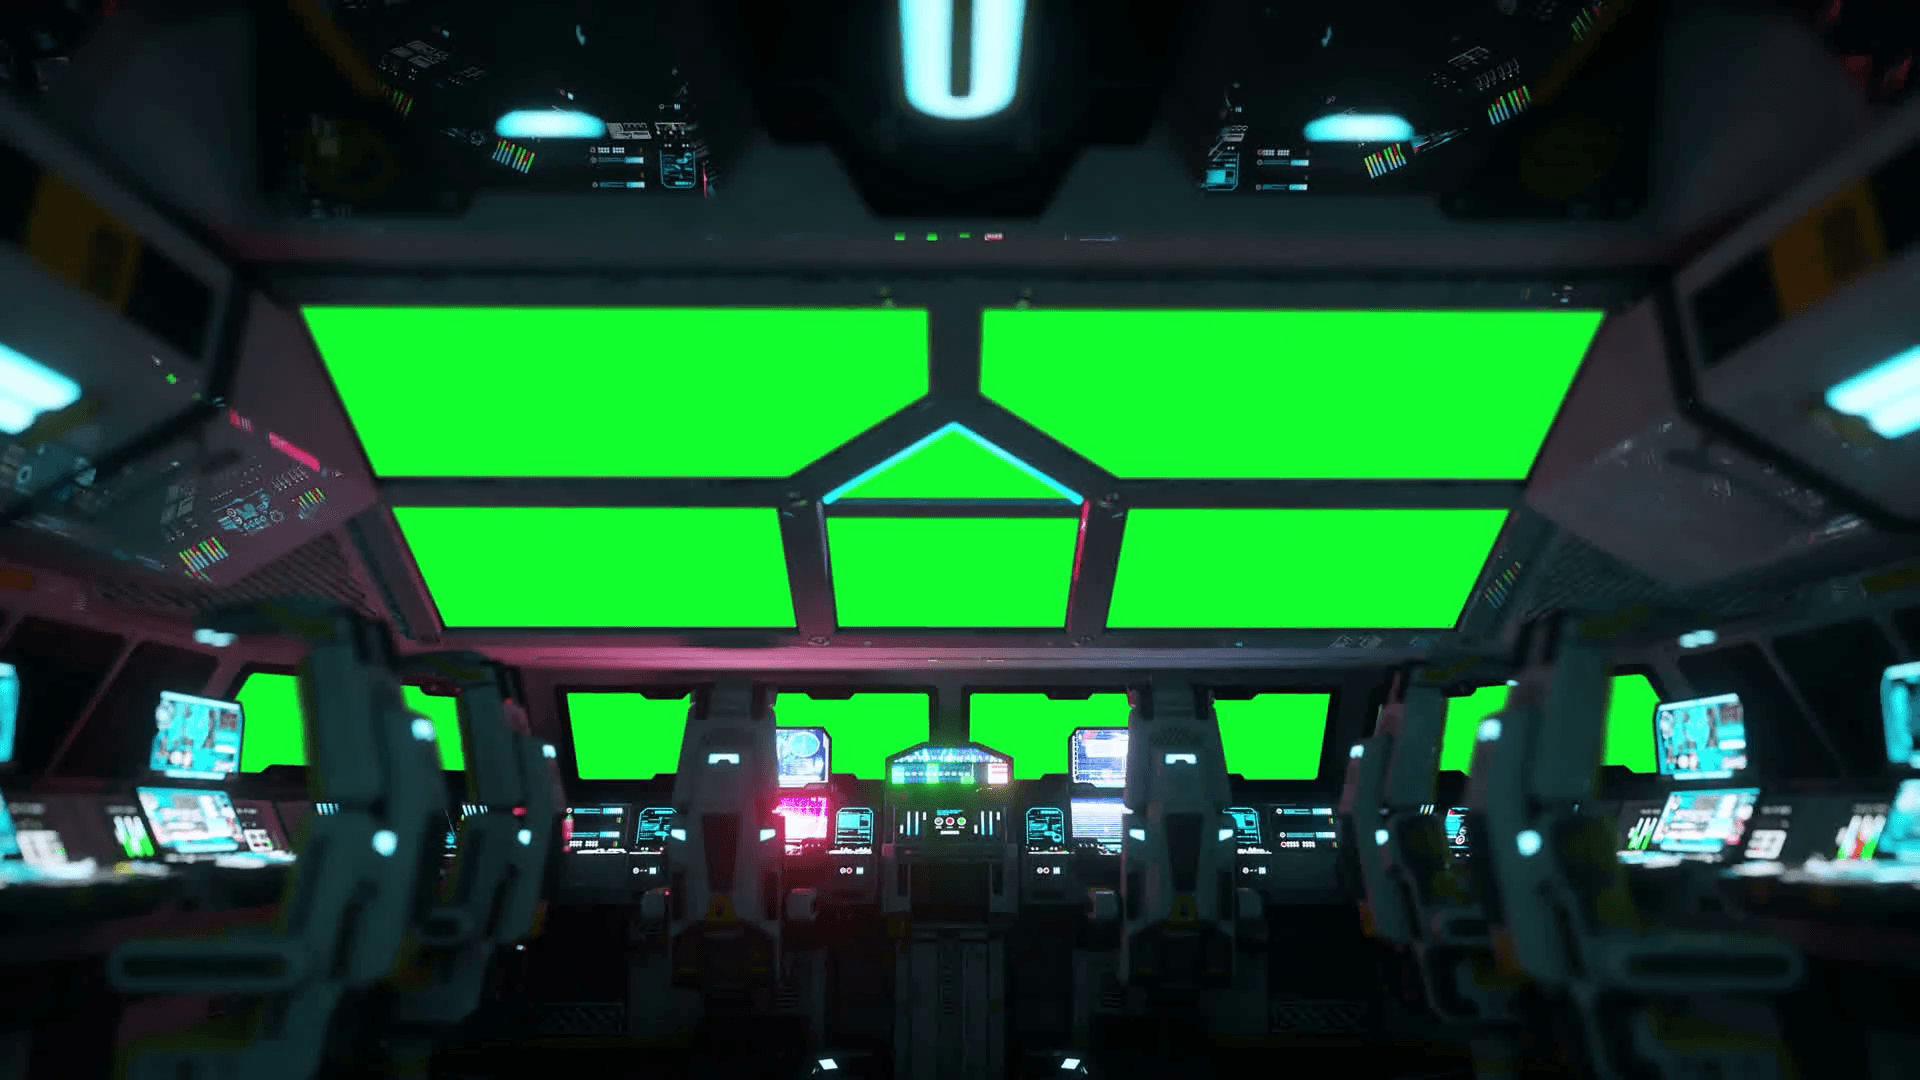 space ship futuristic interior. Cabine view. Green screen footage